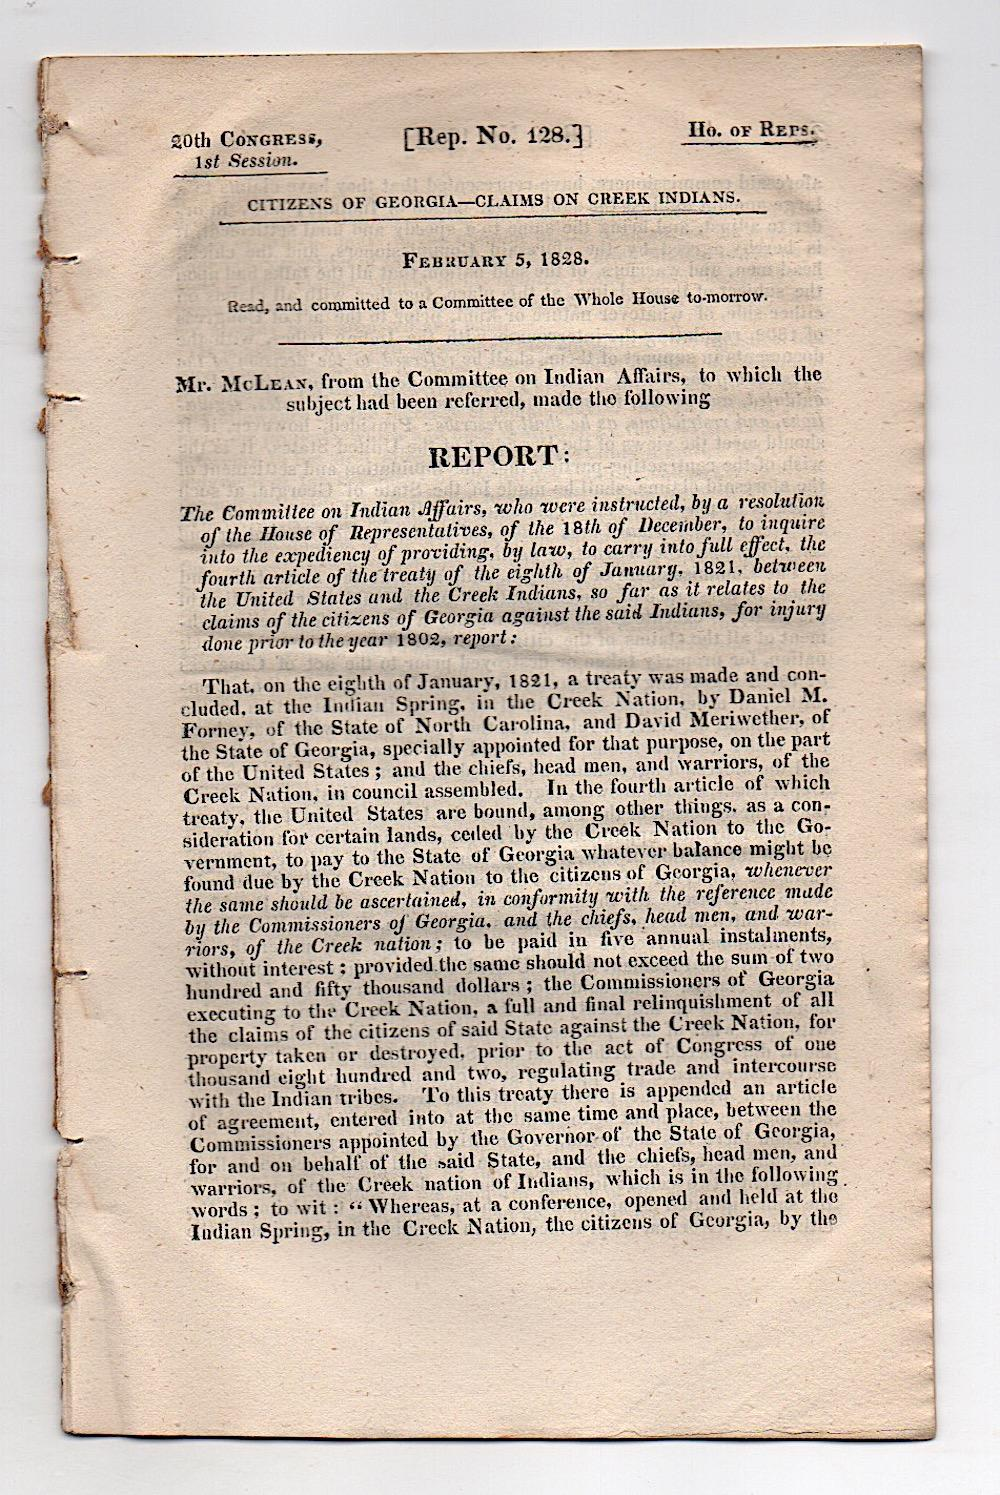 Important Georgia 1828 Document Claims on Creek Indians